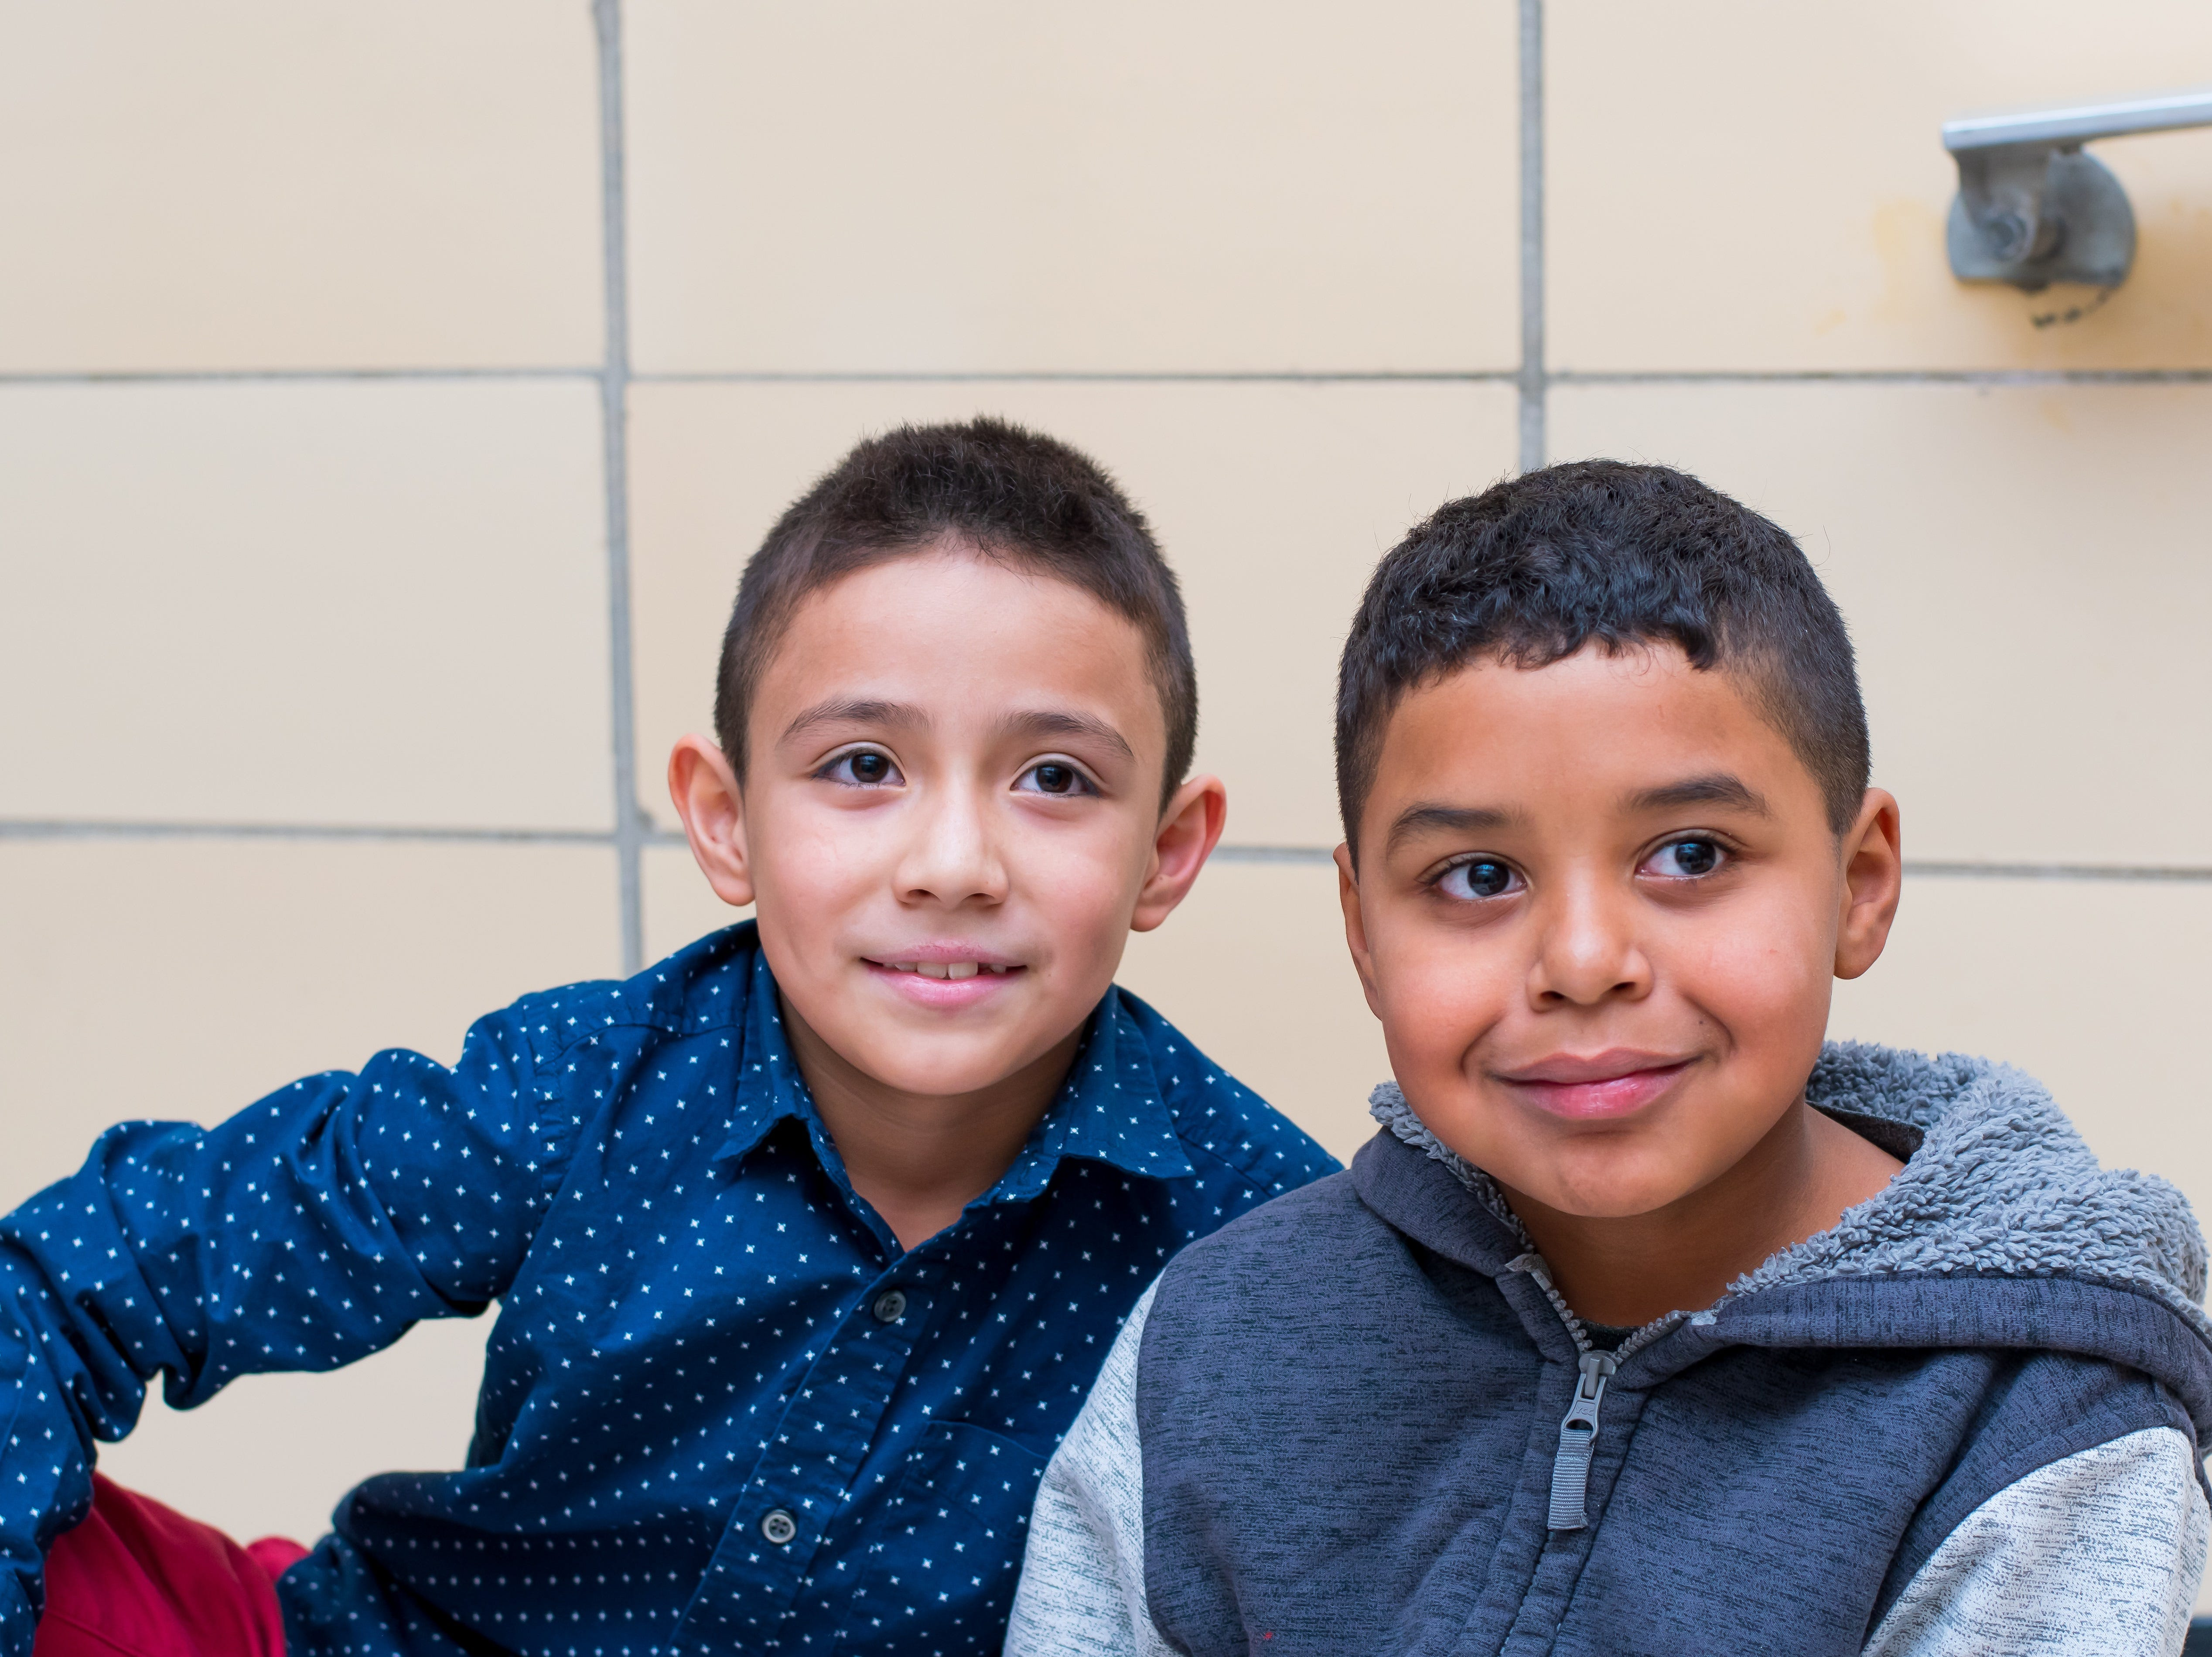 Fredy Mondragon, 8, and Abel Bustos-Bracamonte, 9, both of Clive take a break at the Celebrate Crestview event on Tuesday, Dec. 11, 2018 at Crestview School of Inquiry in Clive. Students learned the history of immigration in Clive and the impact it has had on Crestview.